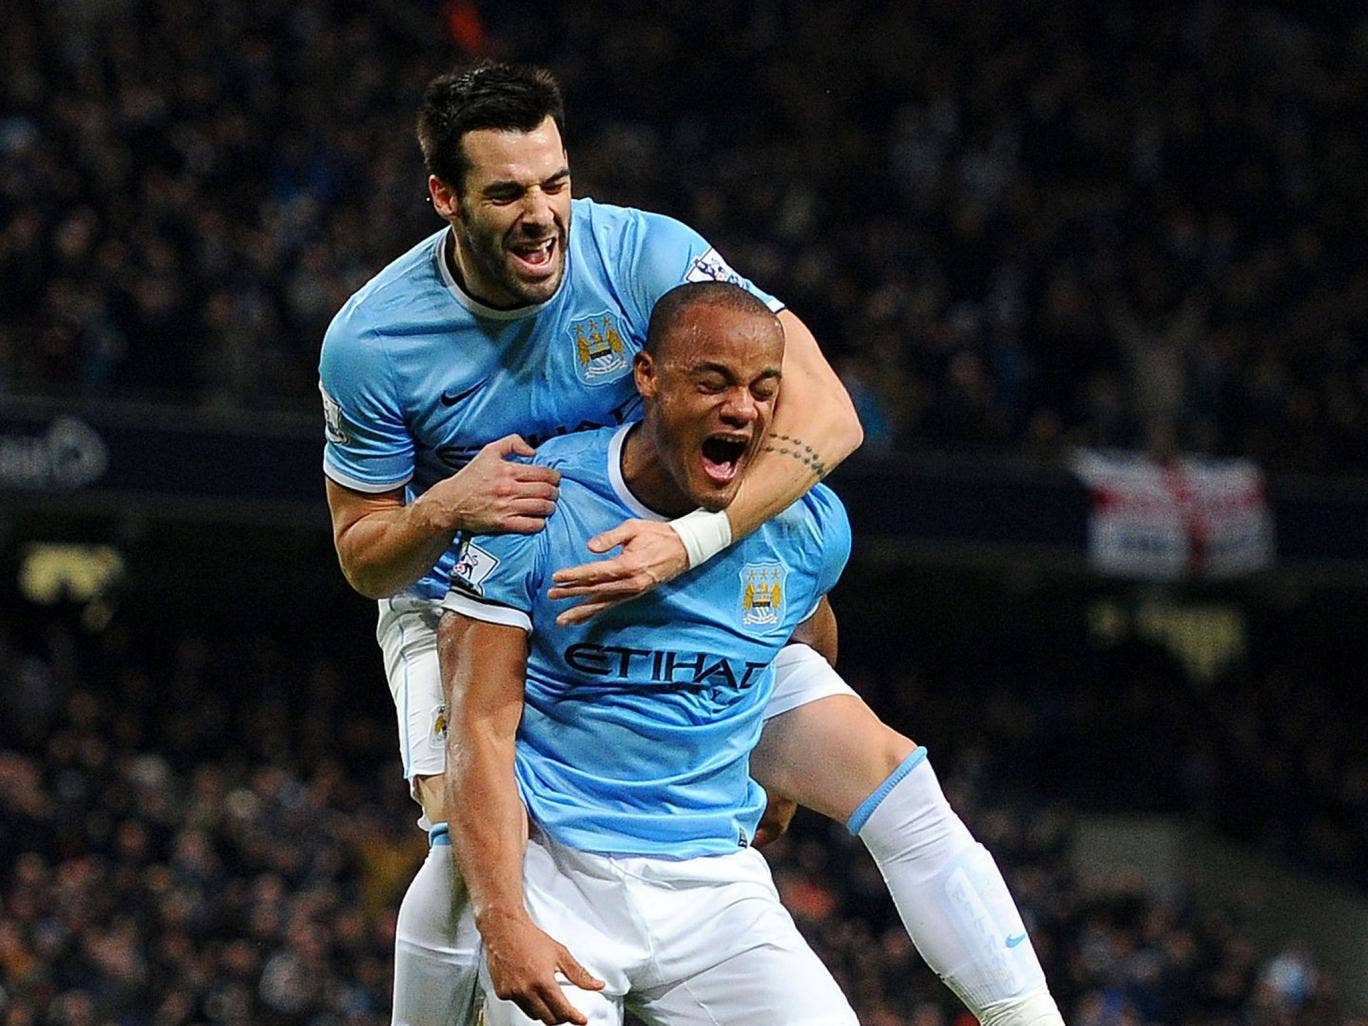 Manchester City's match-winner Alvaro Negredo (top) celebrates with his fellow goalscorer Vincent Kompany at the Etihad